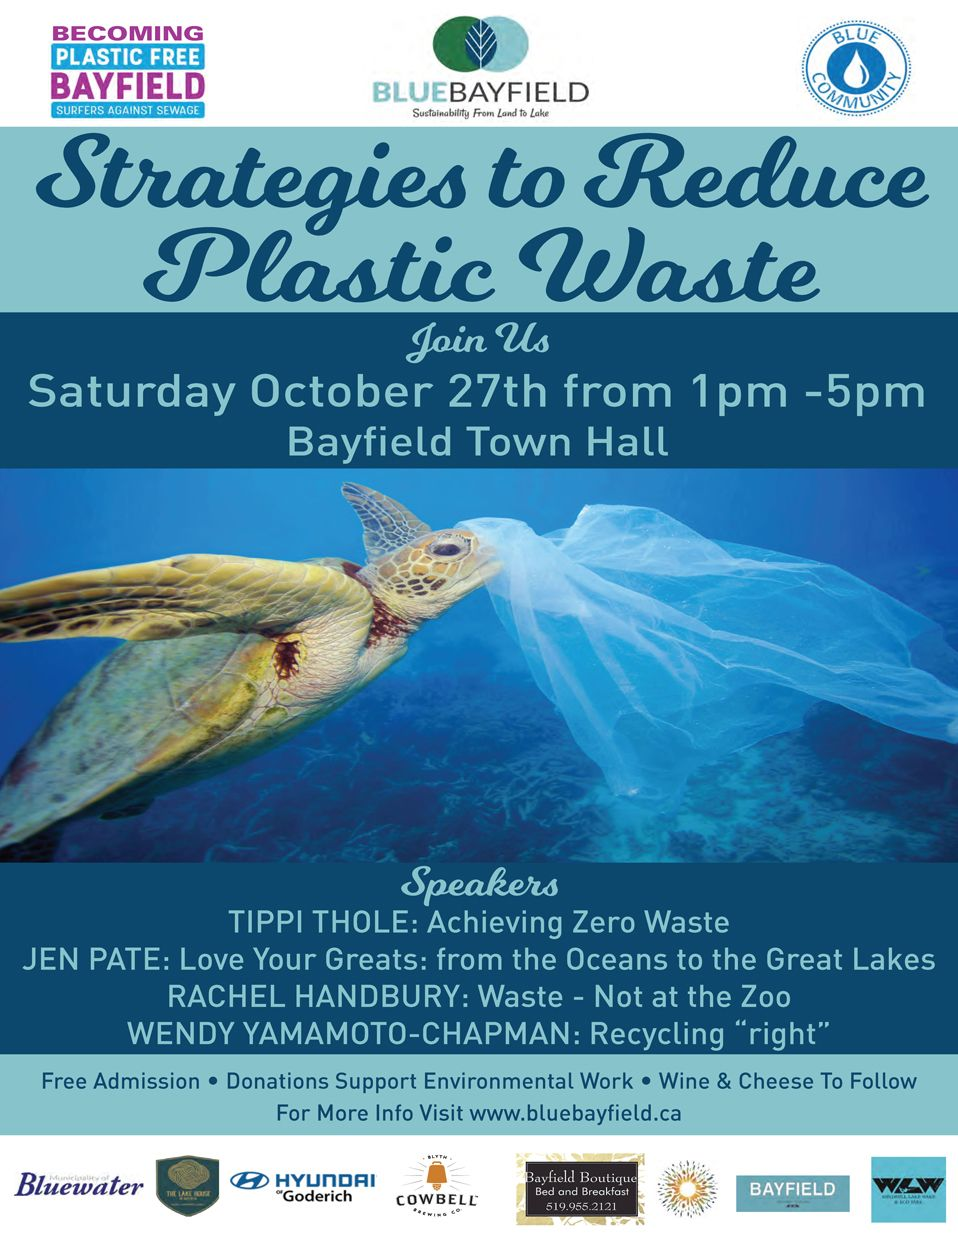 Strategies to Reduce Plastic Waste on Saturday, October 27, 2018 at Bayfield Town Hall from 1 p.m. to 5 p.m.